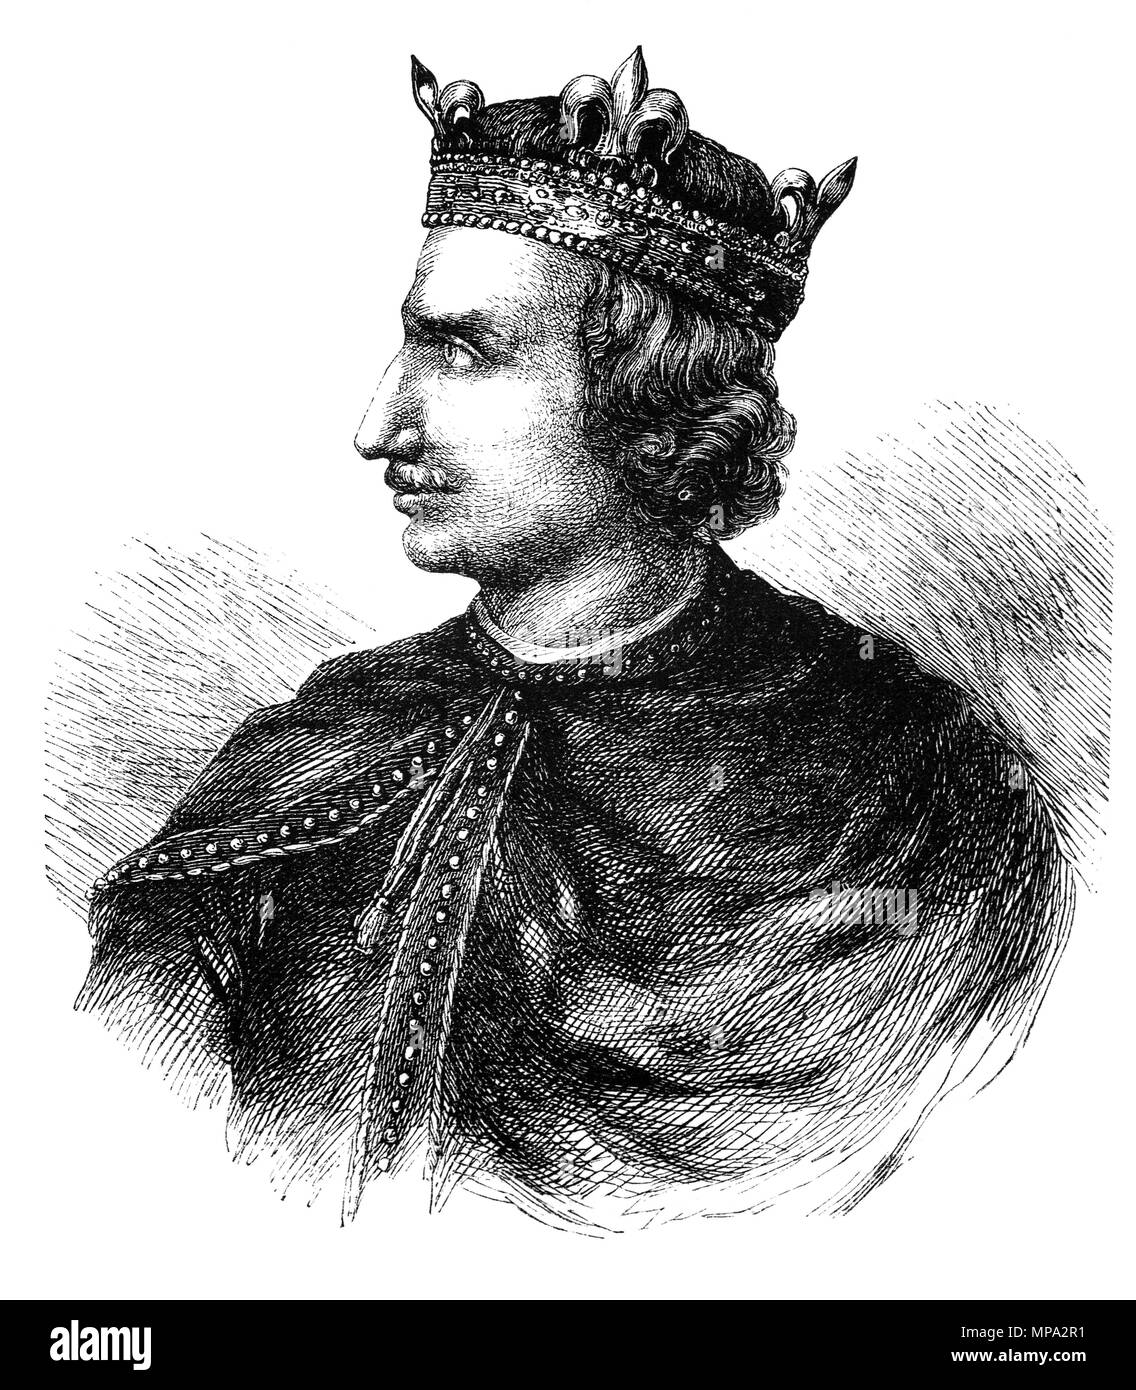 Henry I (1068-1135), was King of England from 1100 to his death. He was the fourth son of William the Conqueror and on William's death in 1087, Henry's elder brothers Robert Curthose and William Rufus inherited Normandy and England, respectively, but Henry was left landless. Henry gradually rebuilt his power base in the Cotentin and allied himself with William against Robert. Henry was present when William died in a hunting accident in 1100, and he seized the English throne, promising at his coronation to correct many of William's less popular policies. Stock Photo